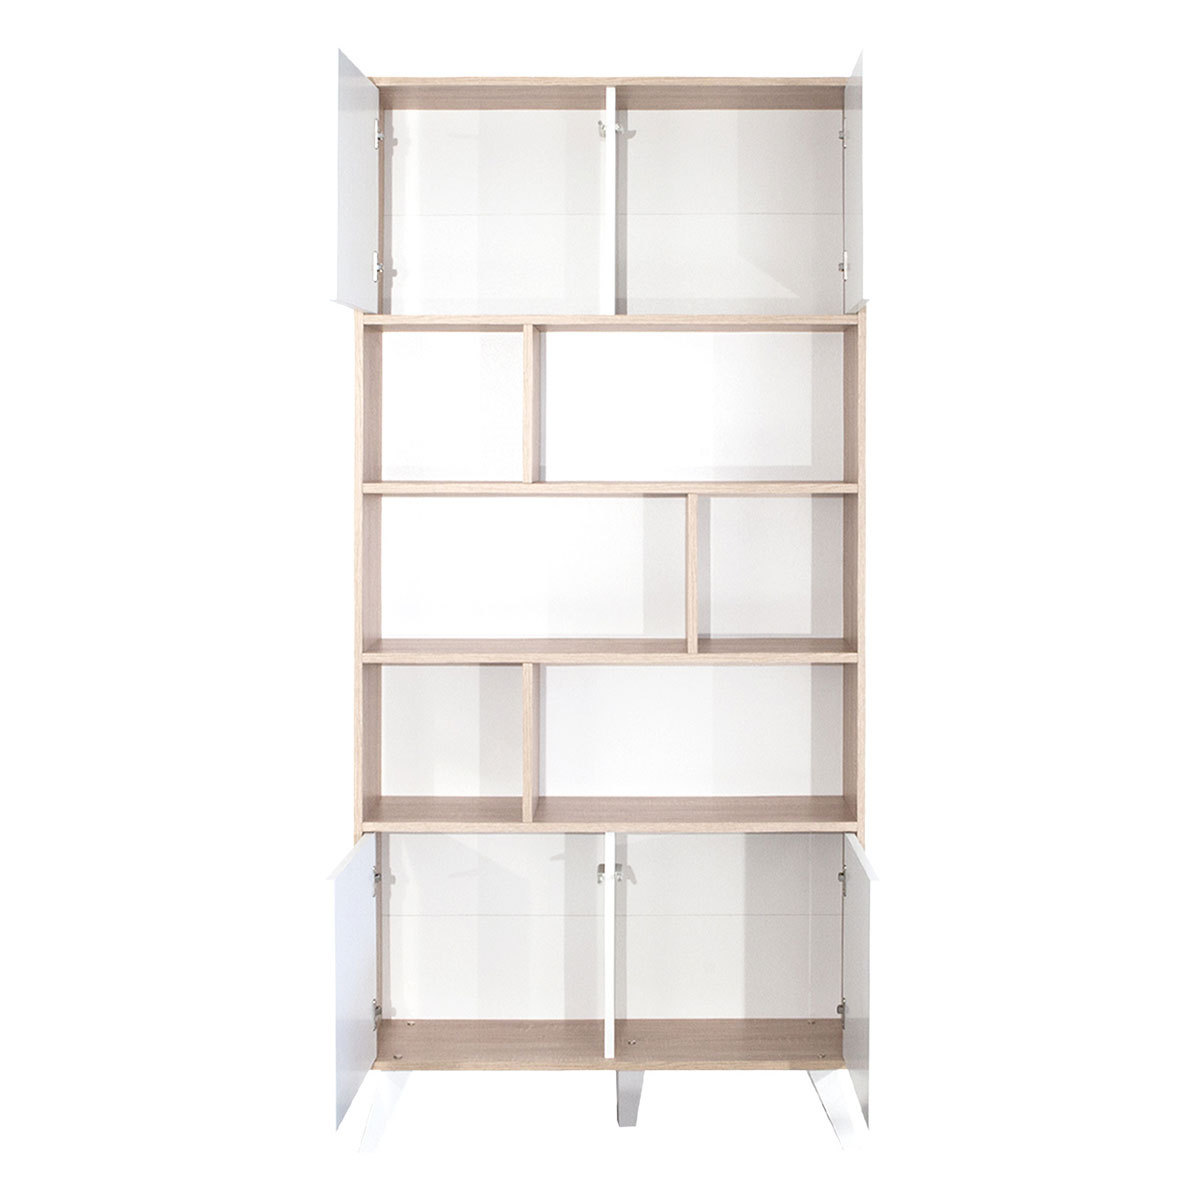 meuble bibliotheque generique prism 186 5 x 89 5 cm chene blanc. Black Bedroom Furniture Sets. Home Design Ideas